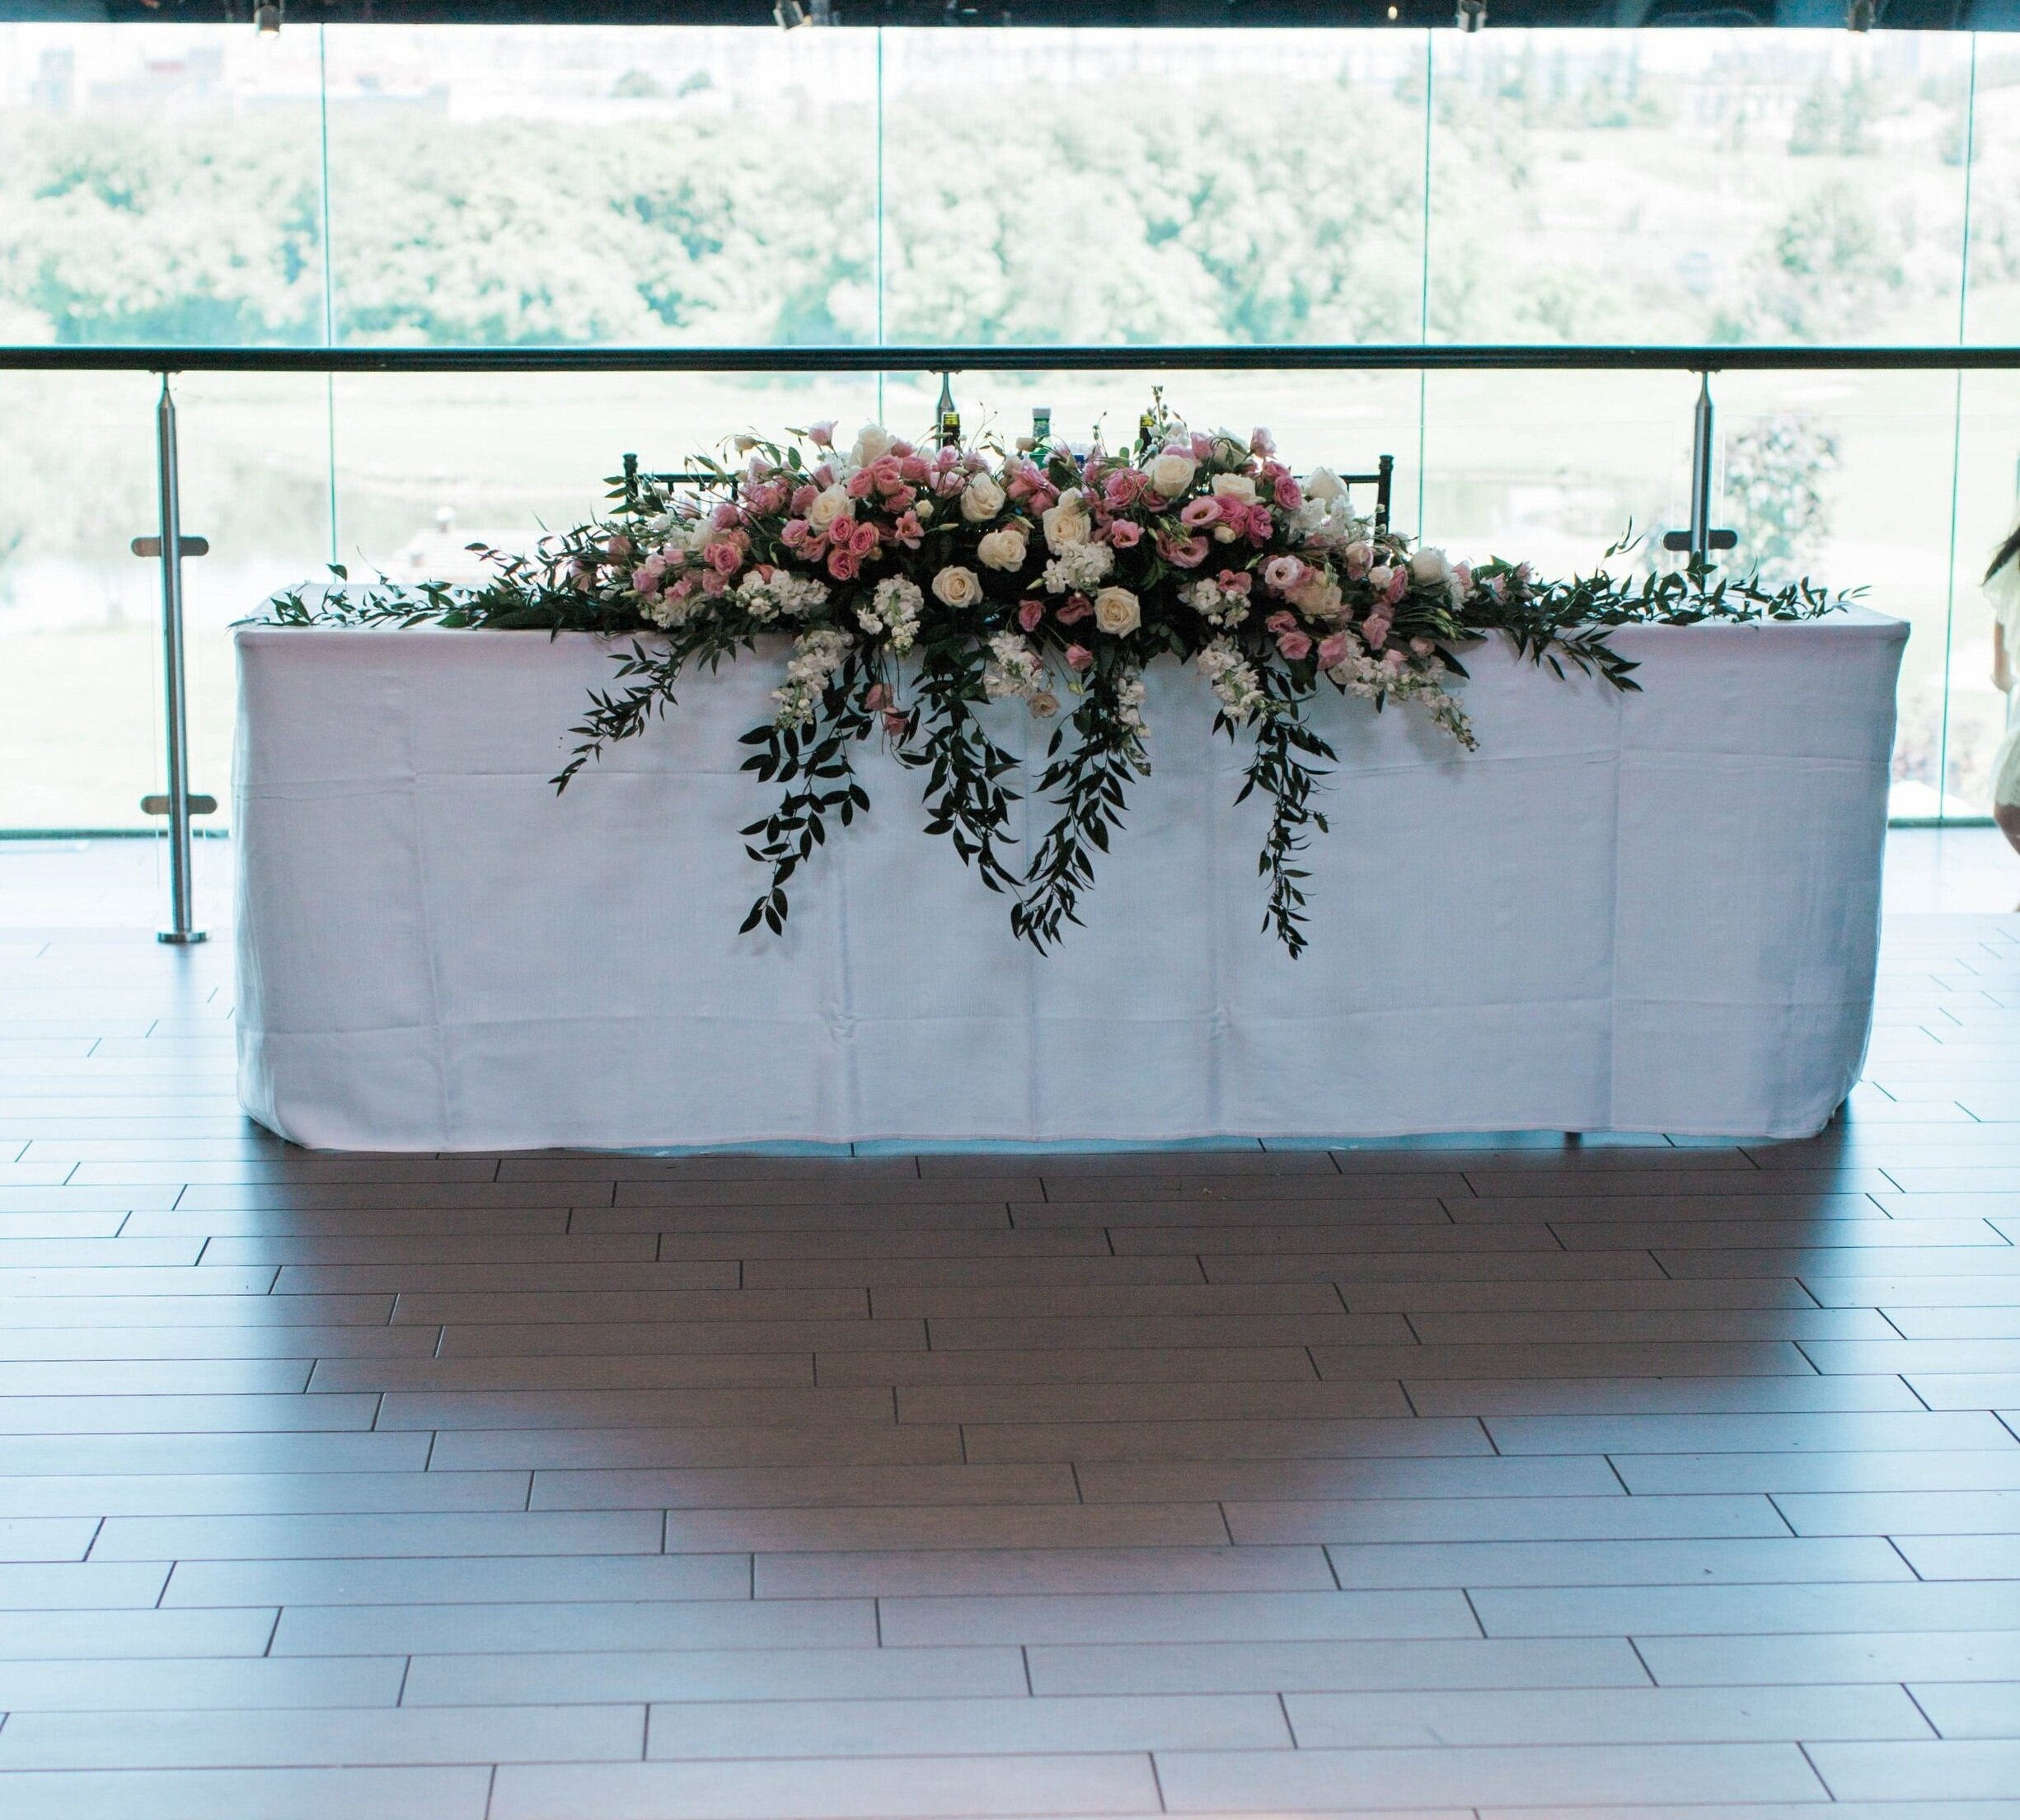 Head table sweetheart table with pink and white arrangement - Trendy Modern Brunch Wedding - Historia Wedding and Event Planning